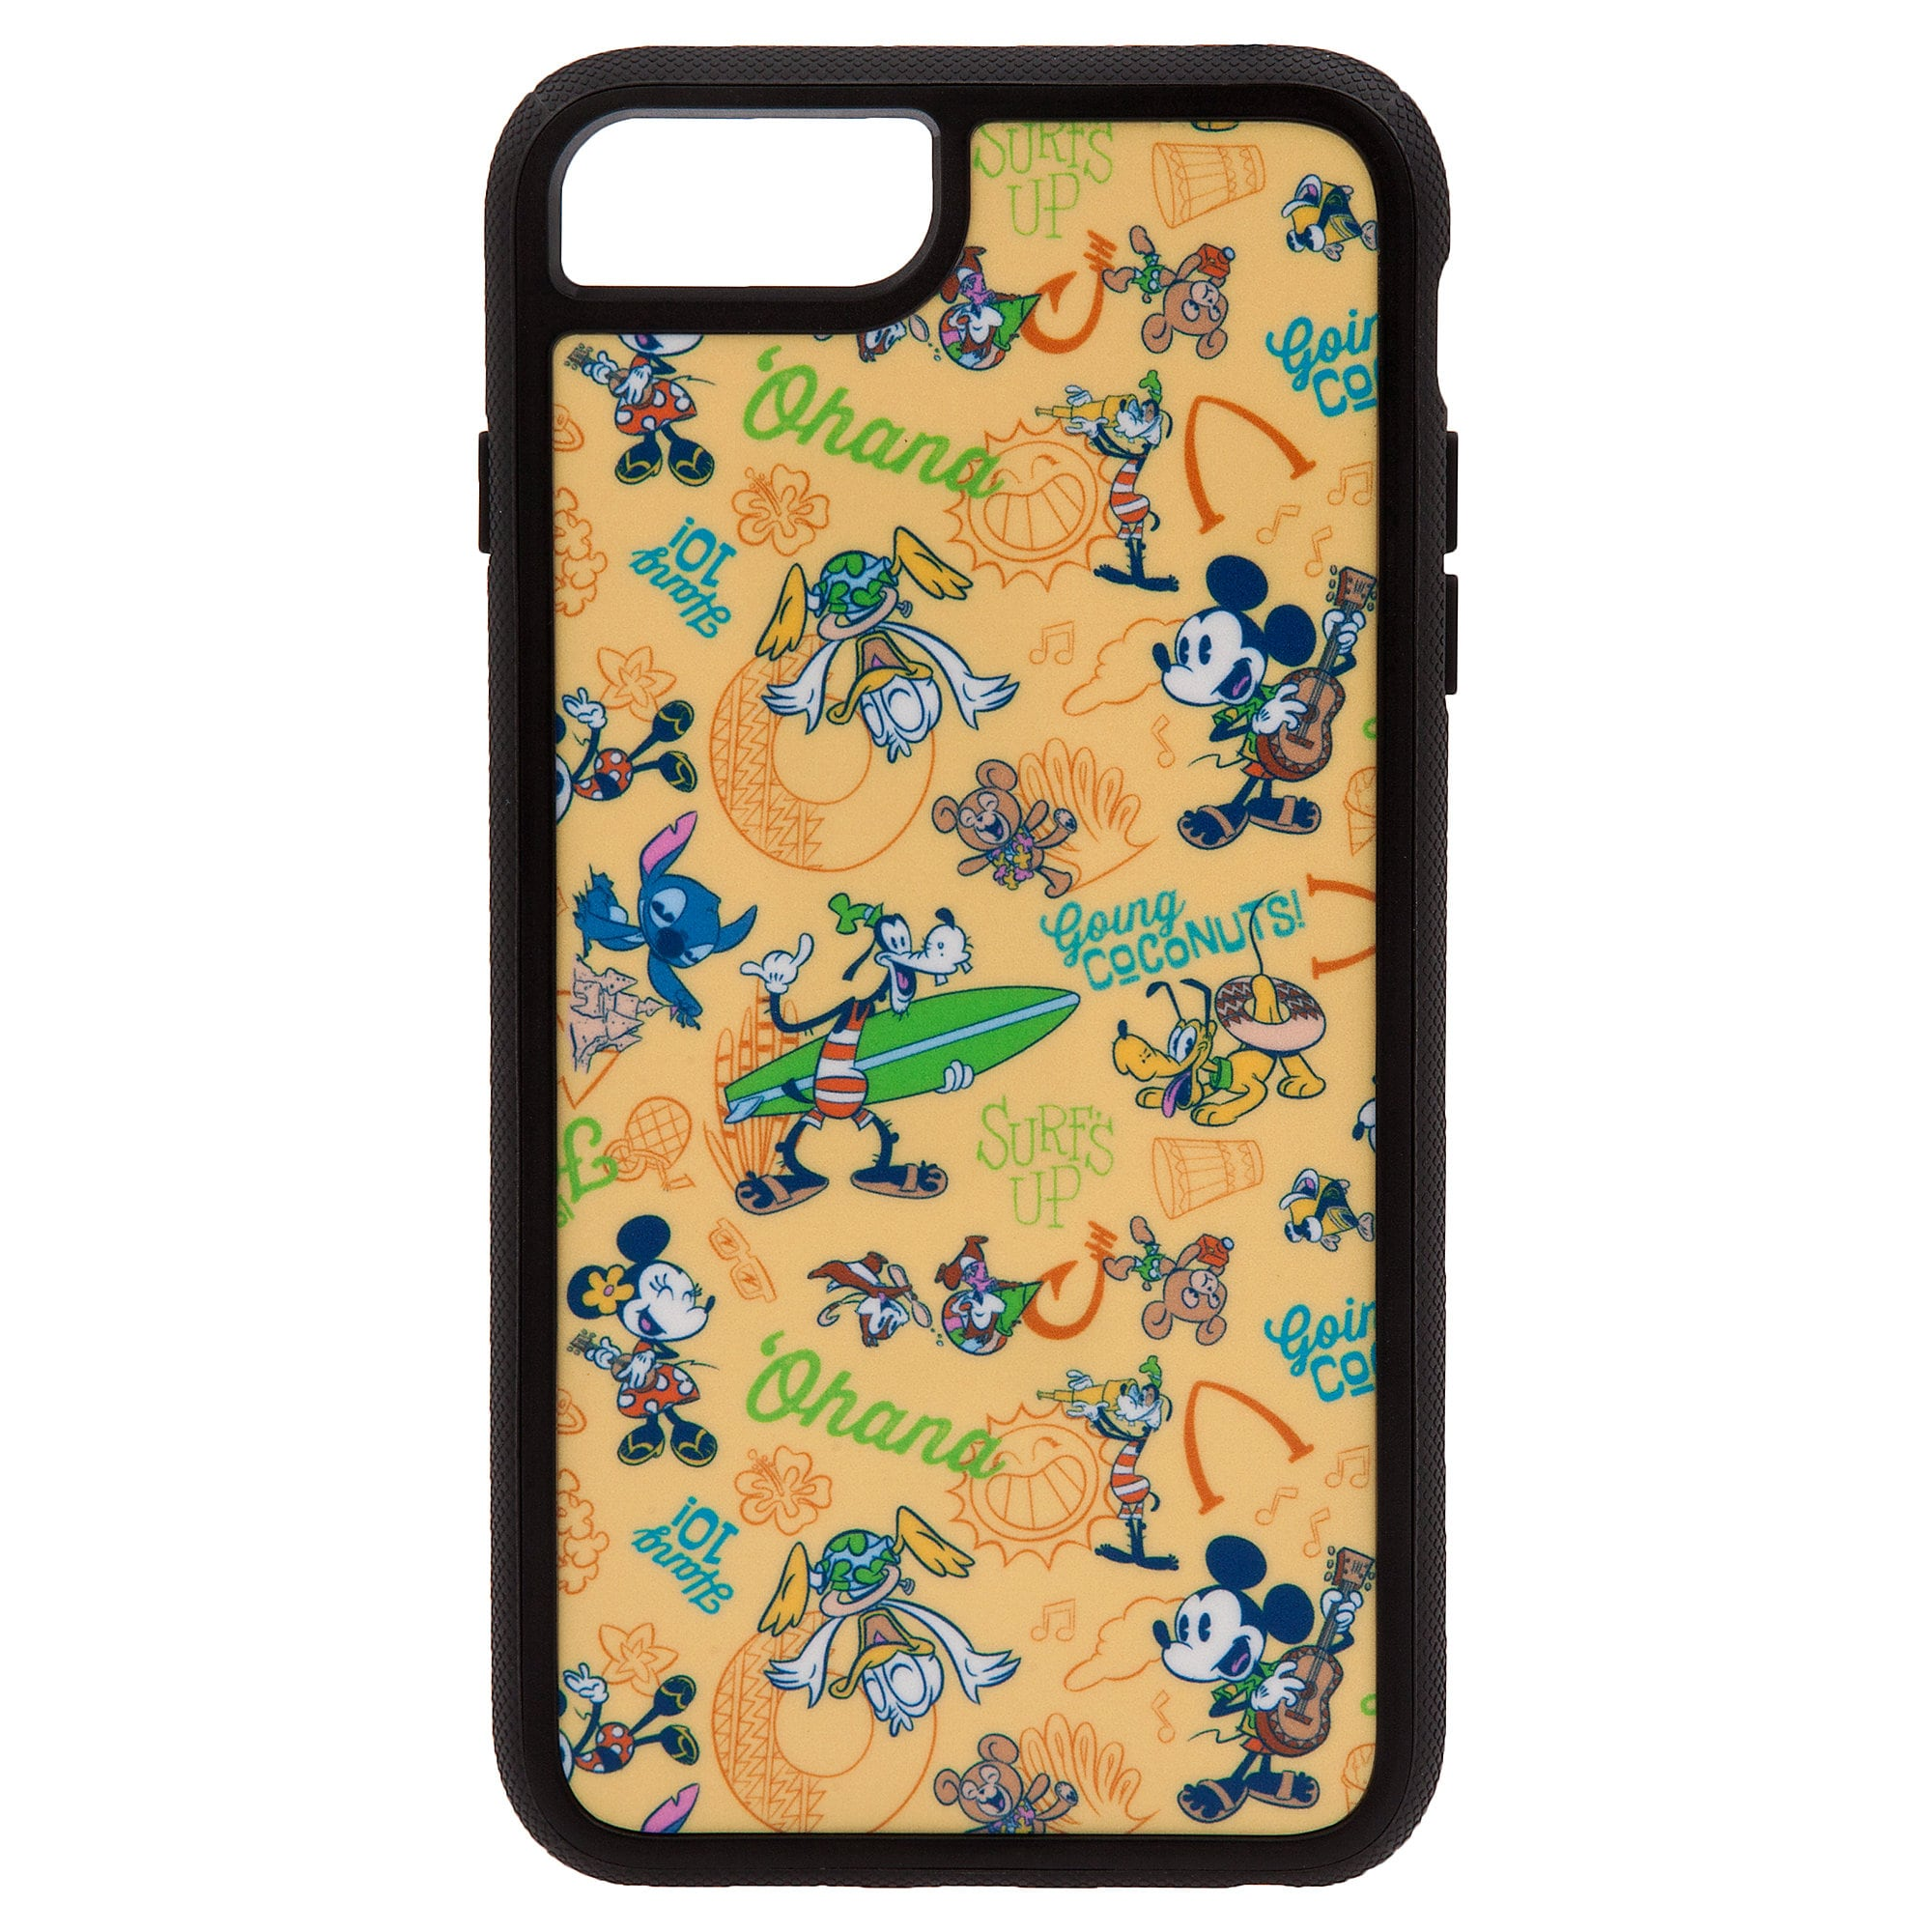 Mickey Mouse and Friends iPhone 7 Plus/6 Plus Case - Aulani, a Disney  Resort & Spa